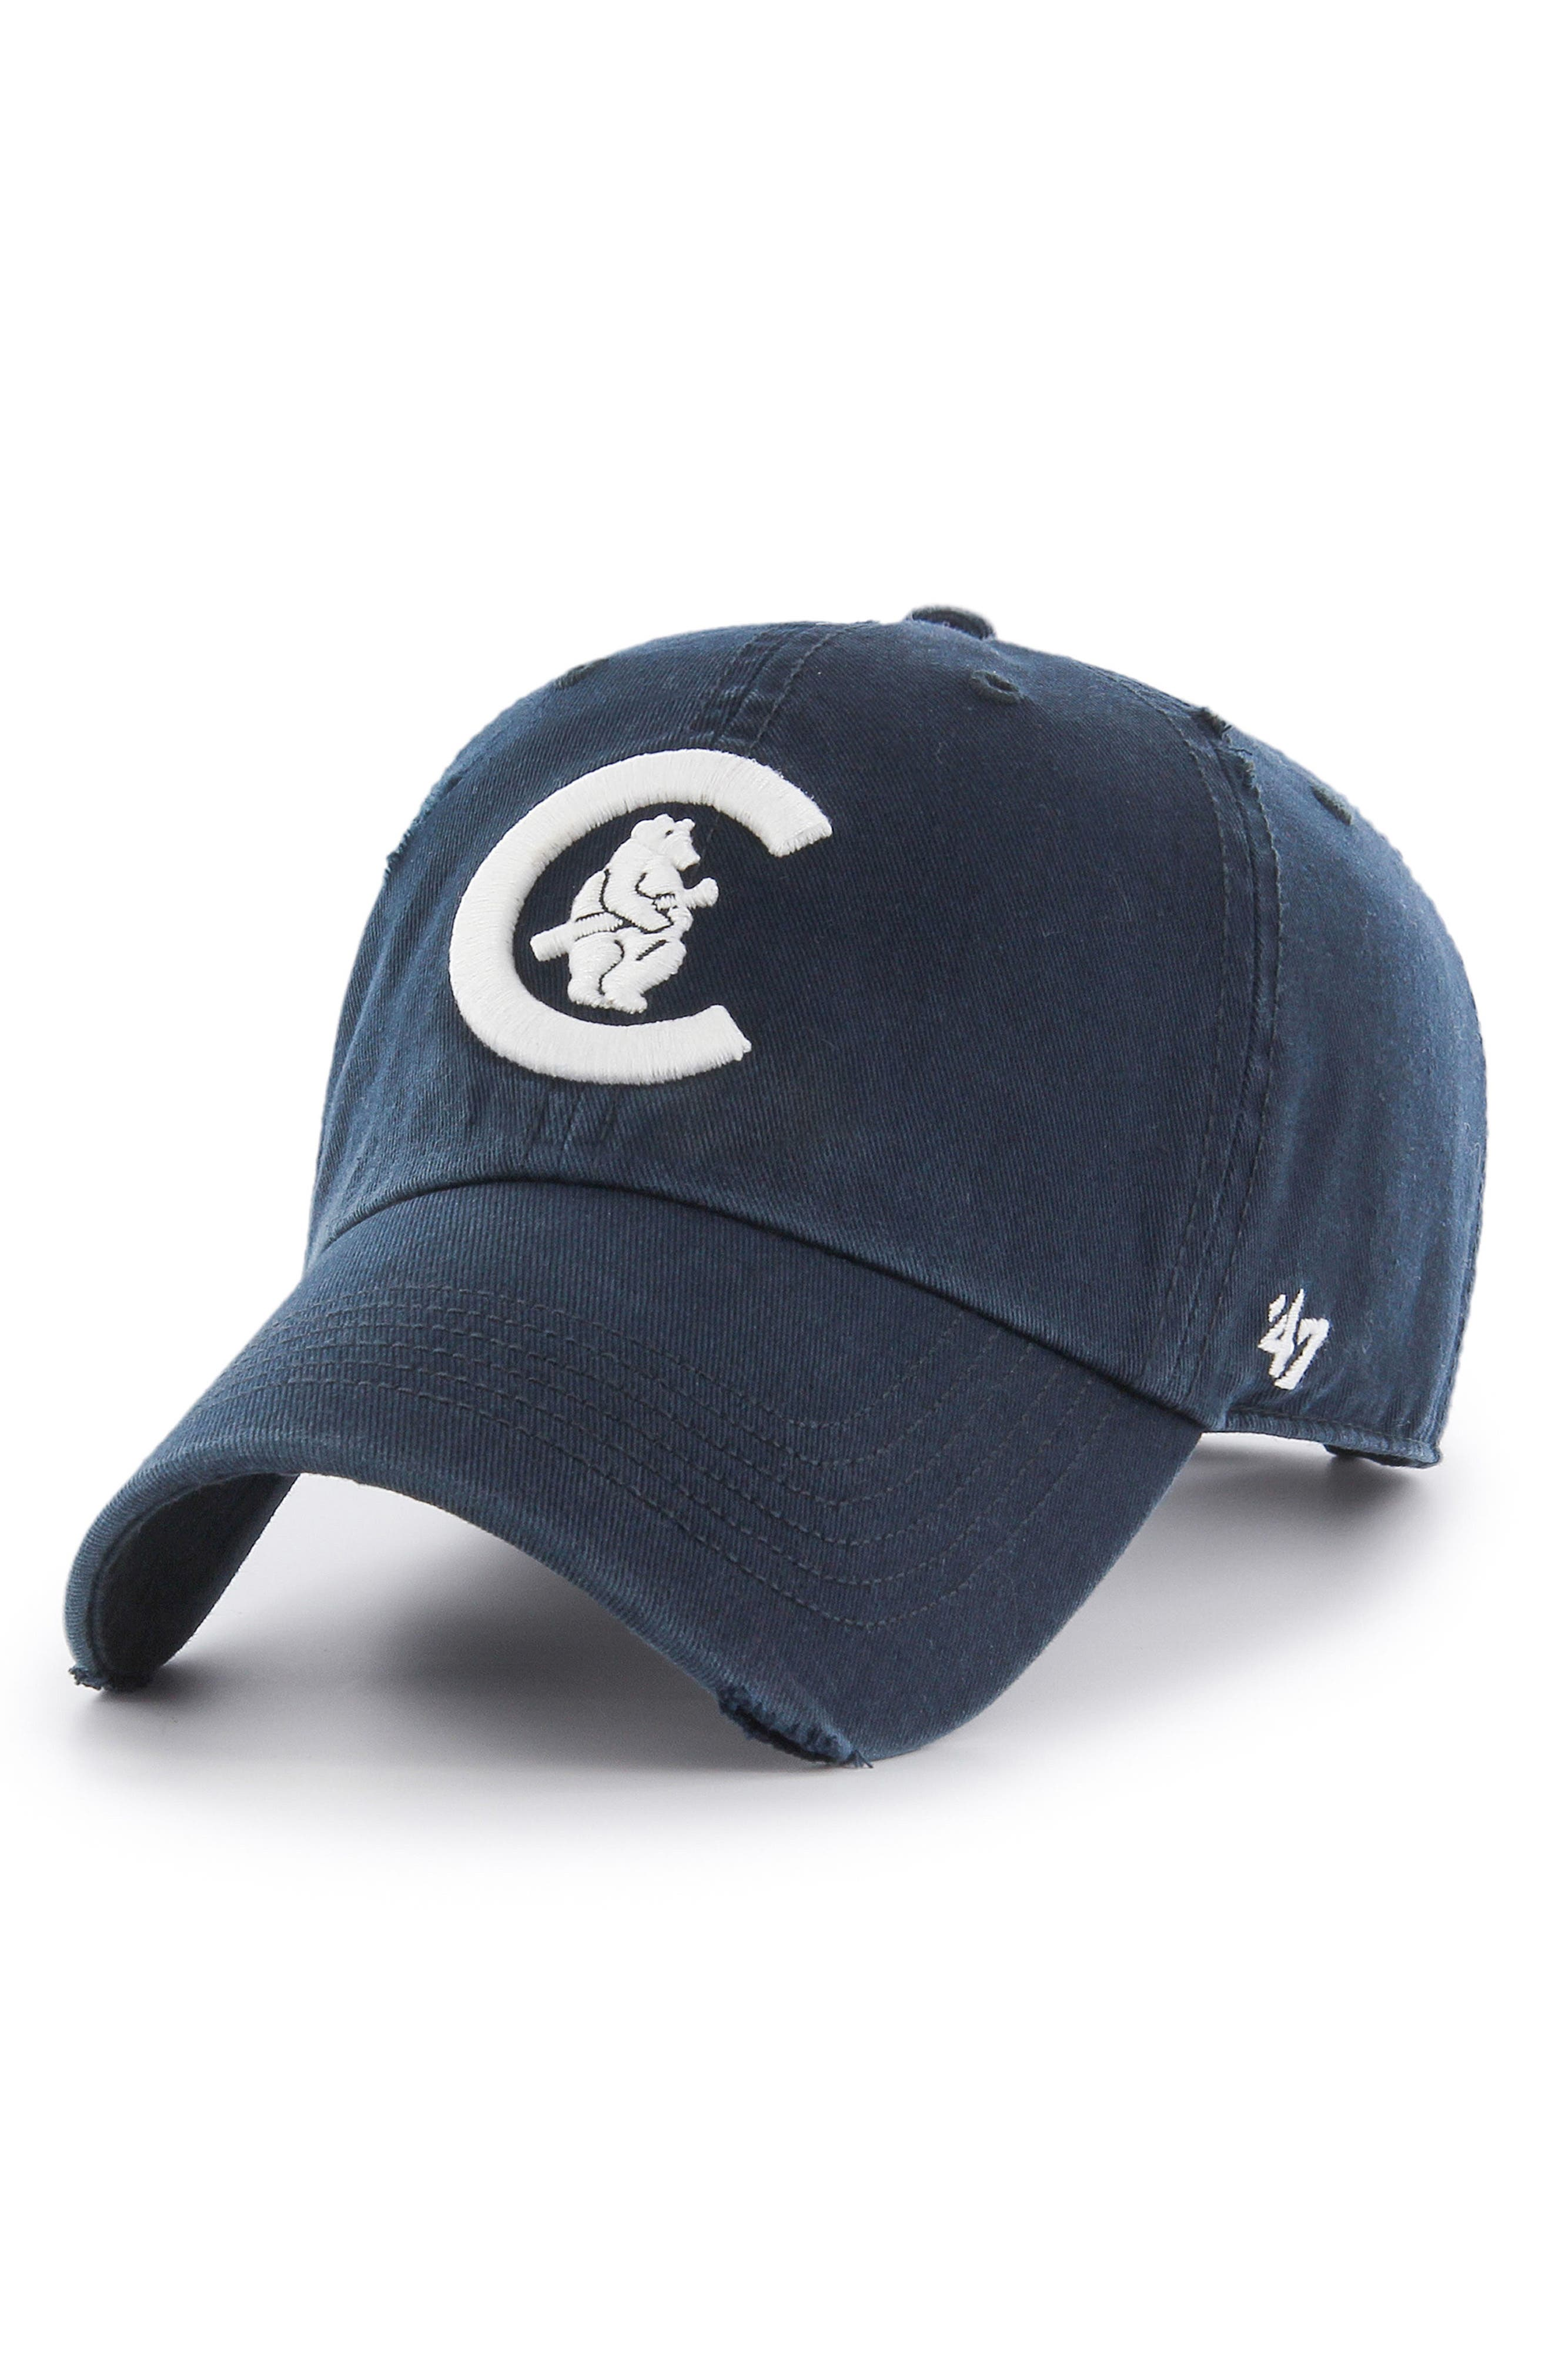 47 Brand Cooperstown Ridge Chicago Cubs Baseball Cap,                         Main,                         color, 410